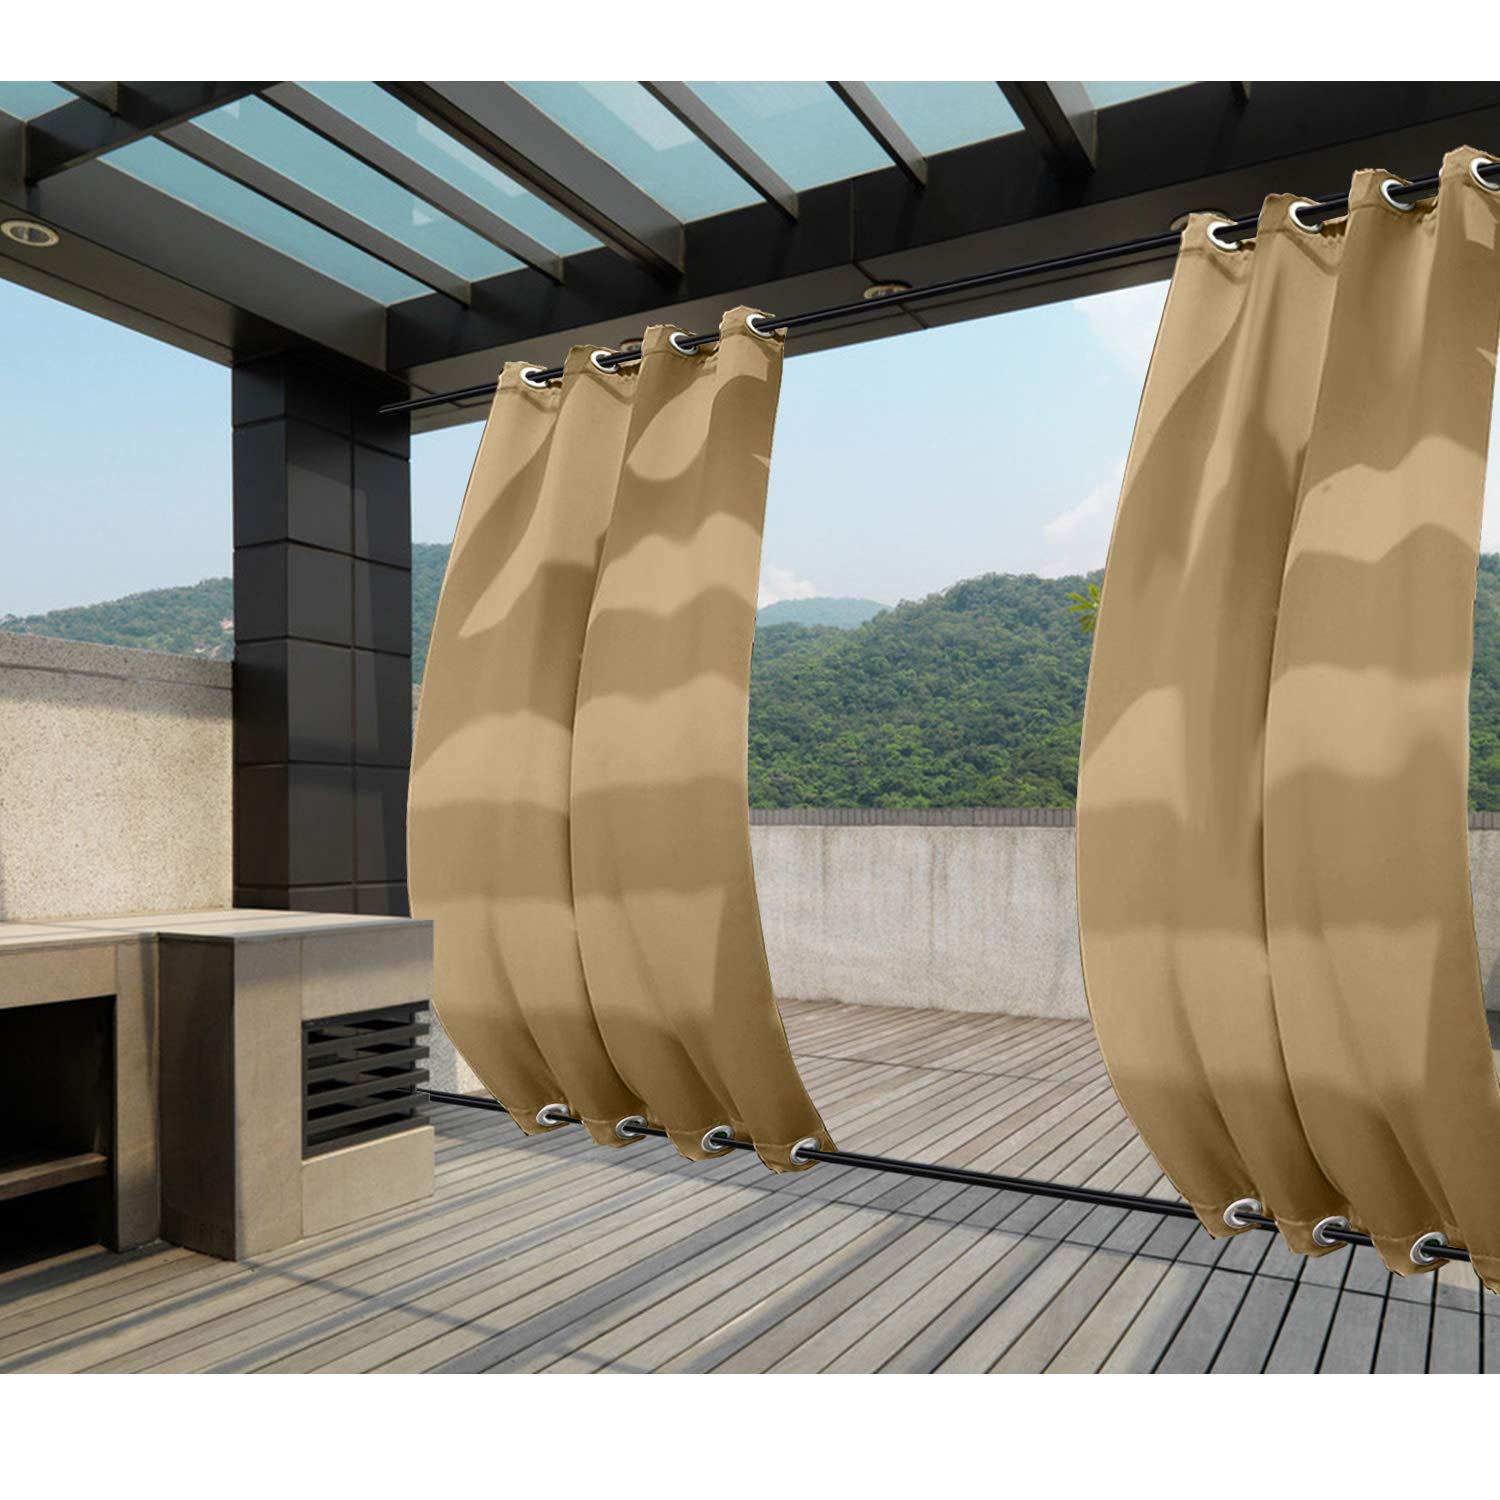 Macochico Windproof Sun Block Privacy Protection Noise Buffer Wheat Outdoor Curtains Panels Grommet at Top and Bottom Water Resistant Drapes for Patio Gazebo Garden 100Wx 84L (1 Panel)